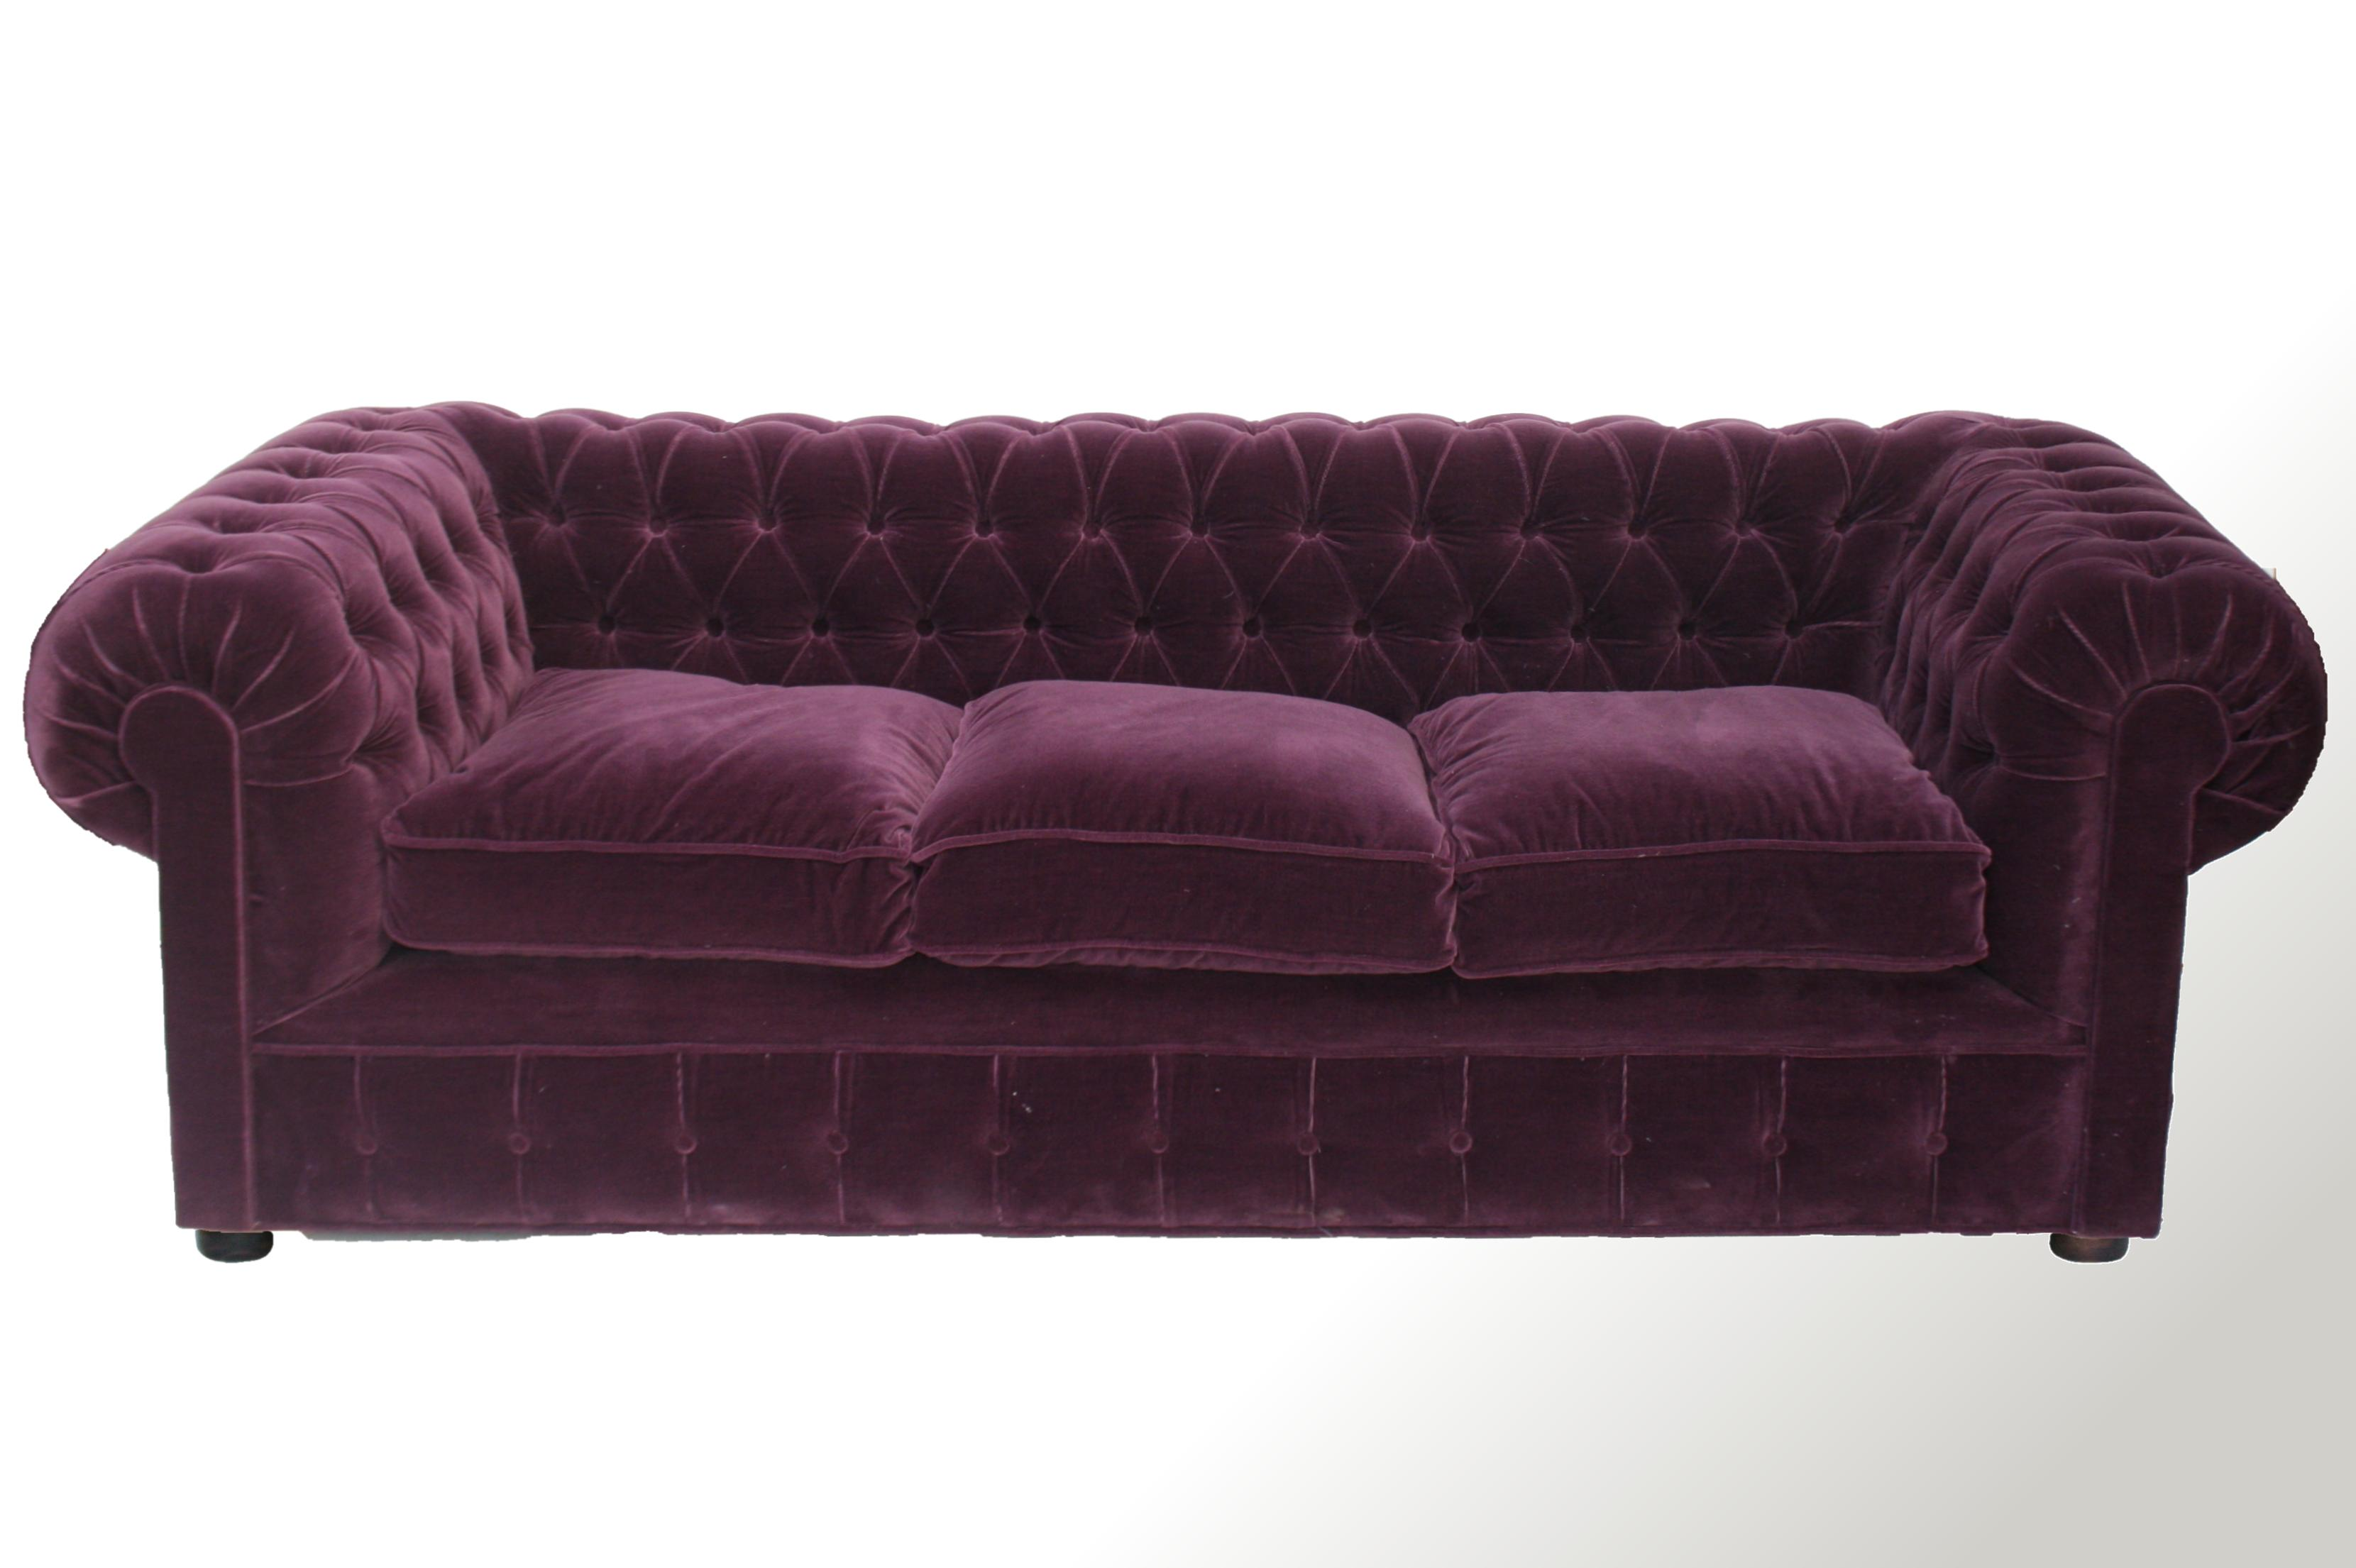 Sof chesterfield 3 cuerpos en pana chesterman a for Sofa 3 cuerpos akita